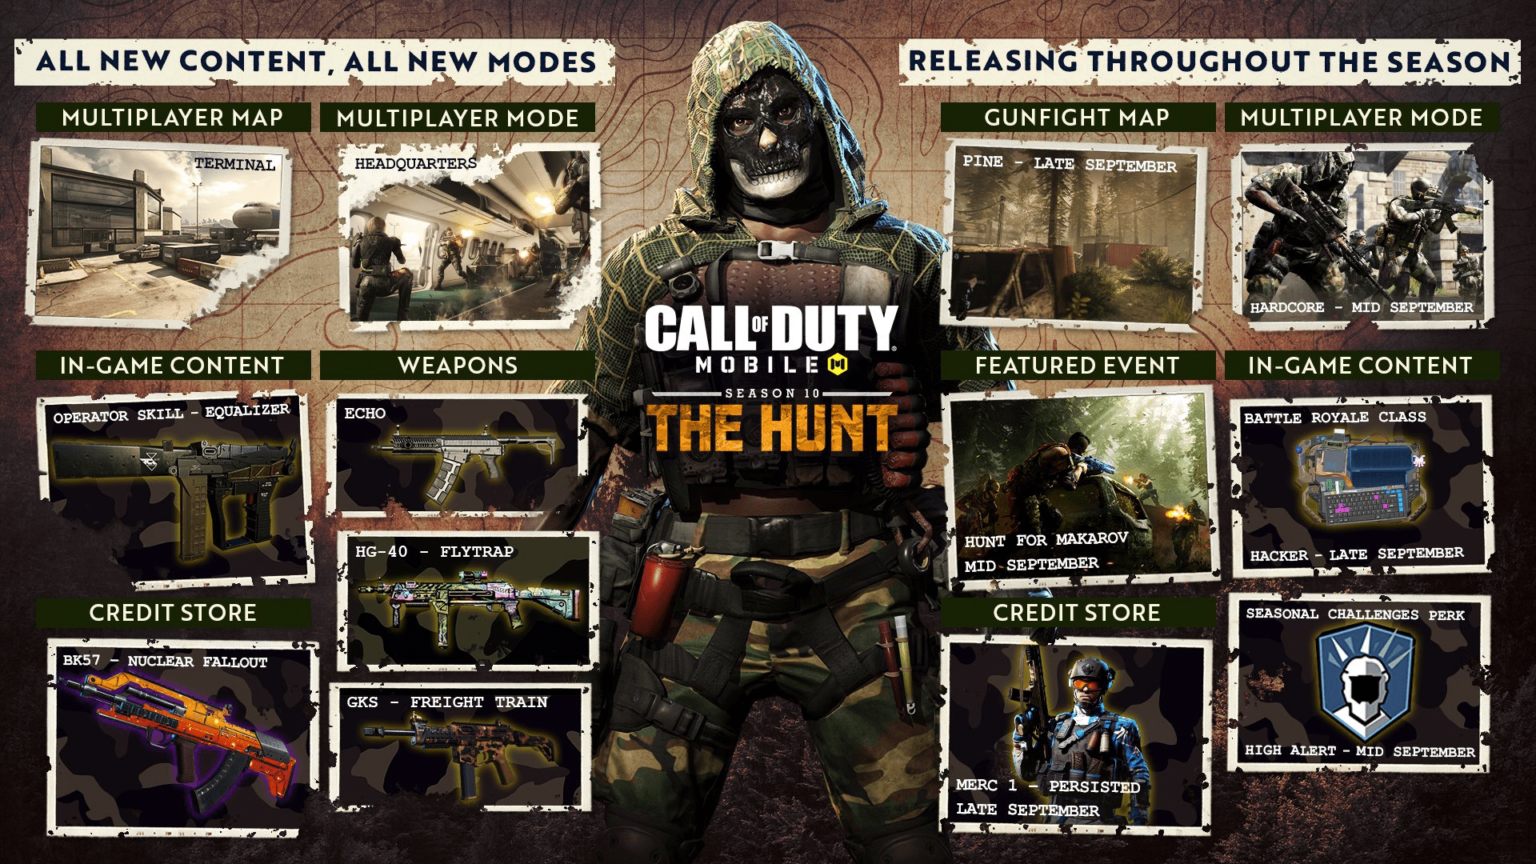 COD Mobile Season 10: The Hunt | Headquarters Mode, Terminal and Pine Maps, Hacker Class in BR Mode